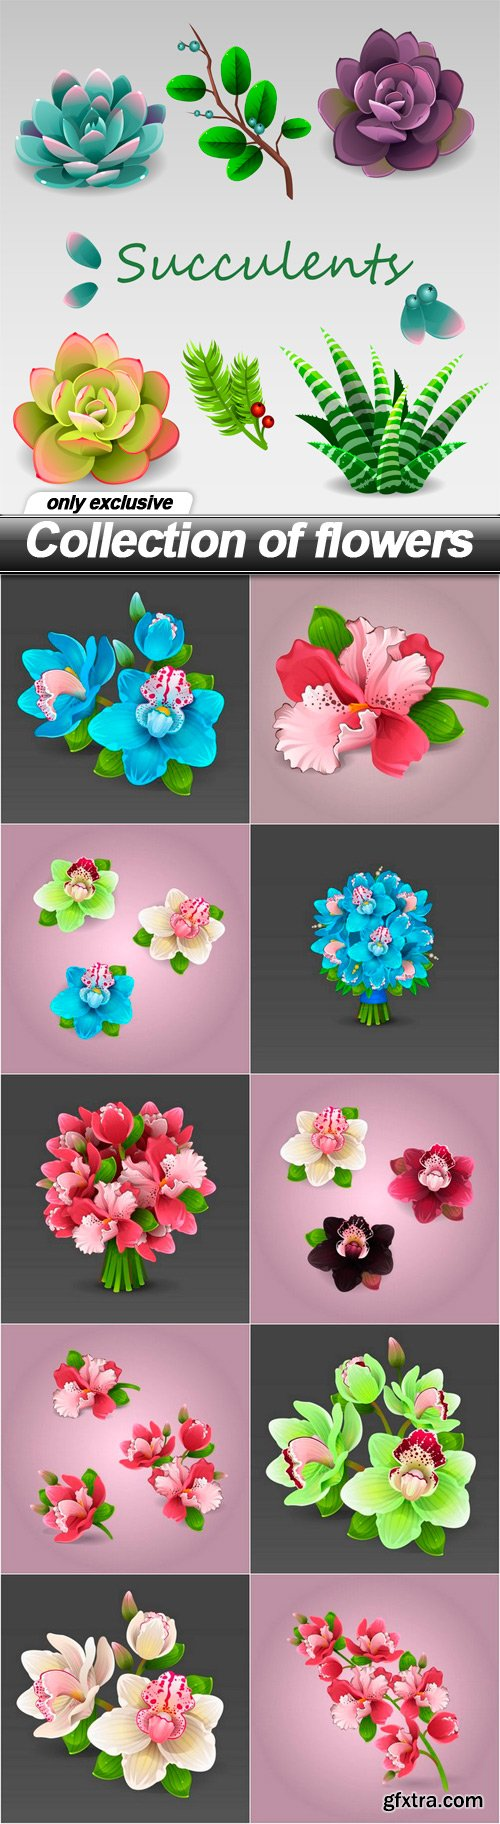 Collection of flowers -